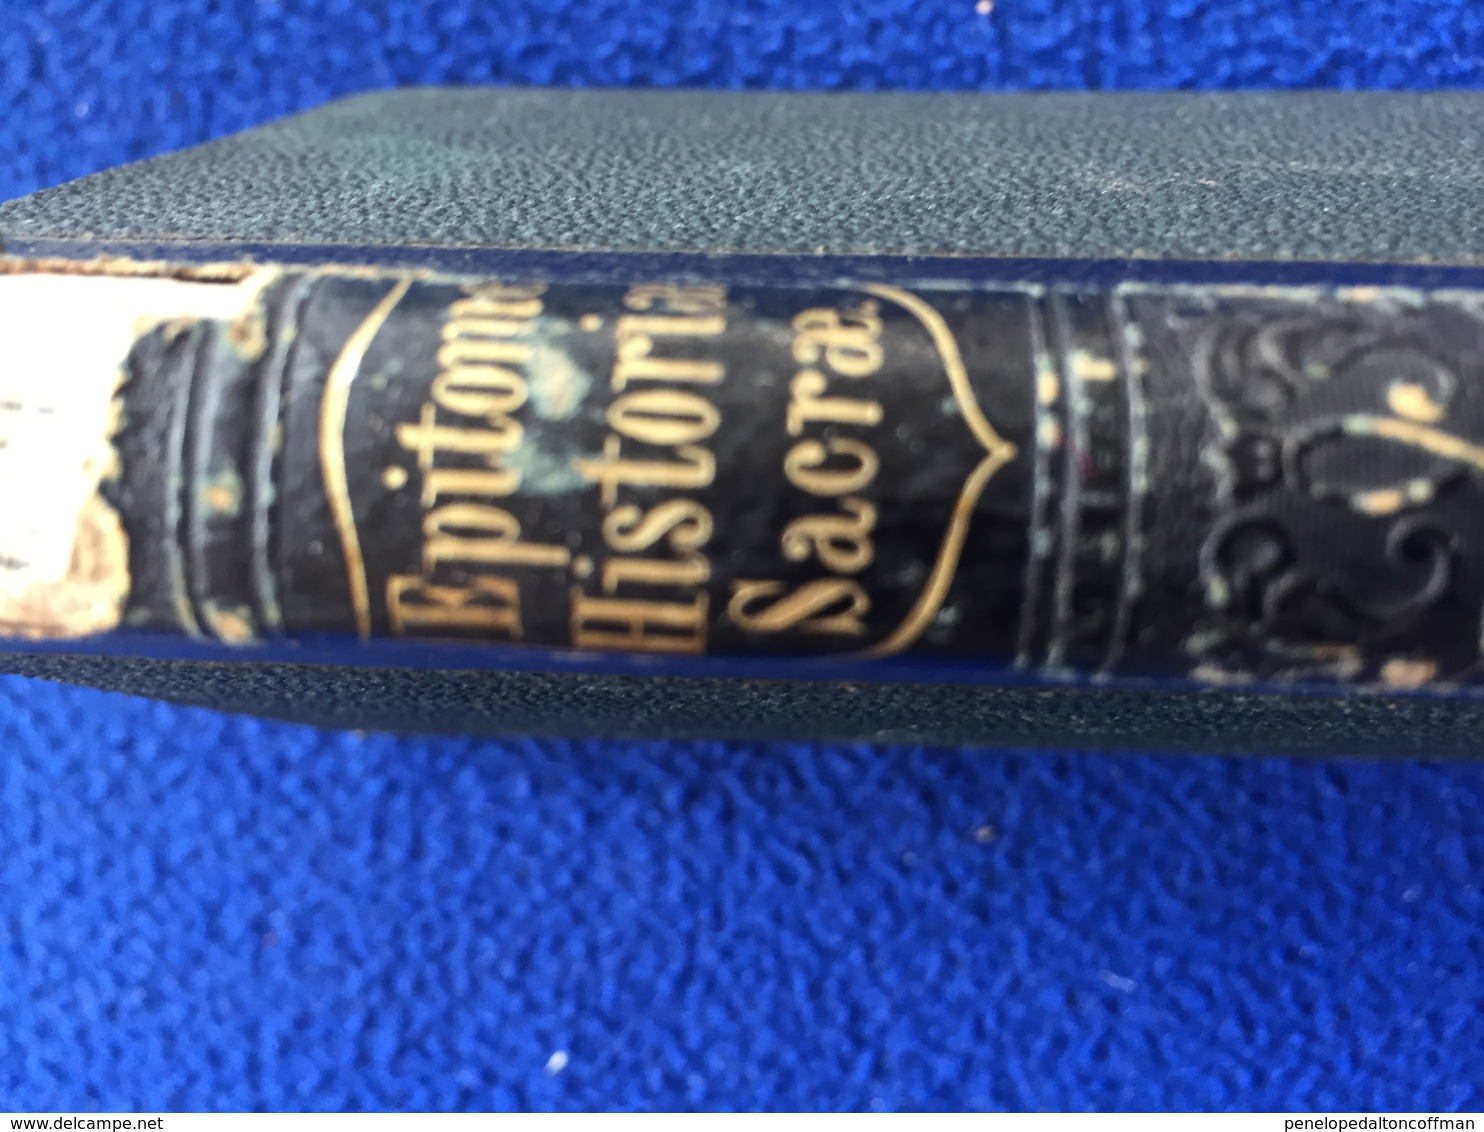 Epitome Historiae Sacrae By L'Homond Christianity Latin Dictionary, Pub. By E,H. Butler & Co. 1825 - Christianity, Bibles